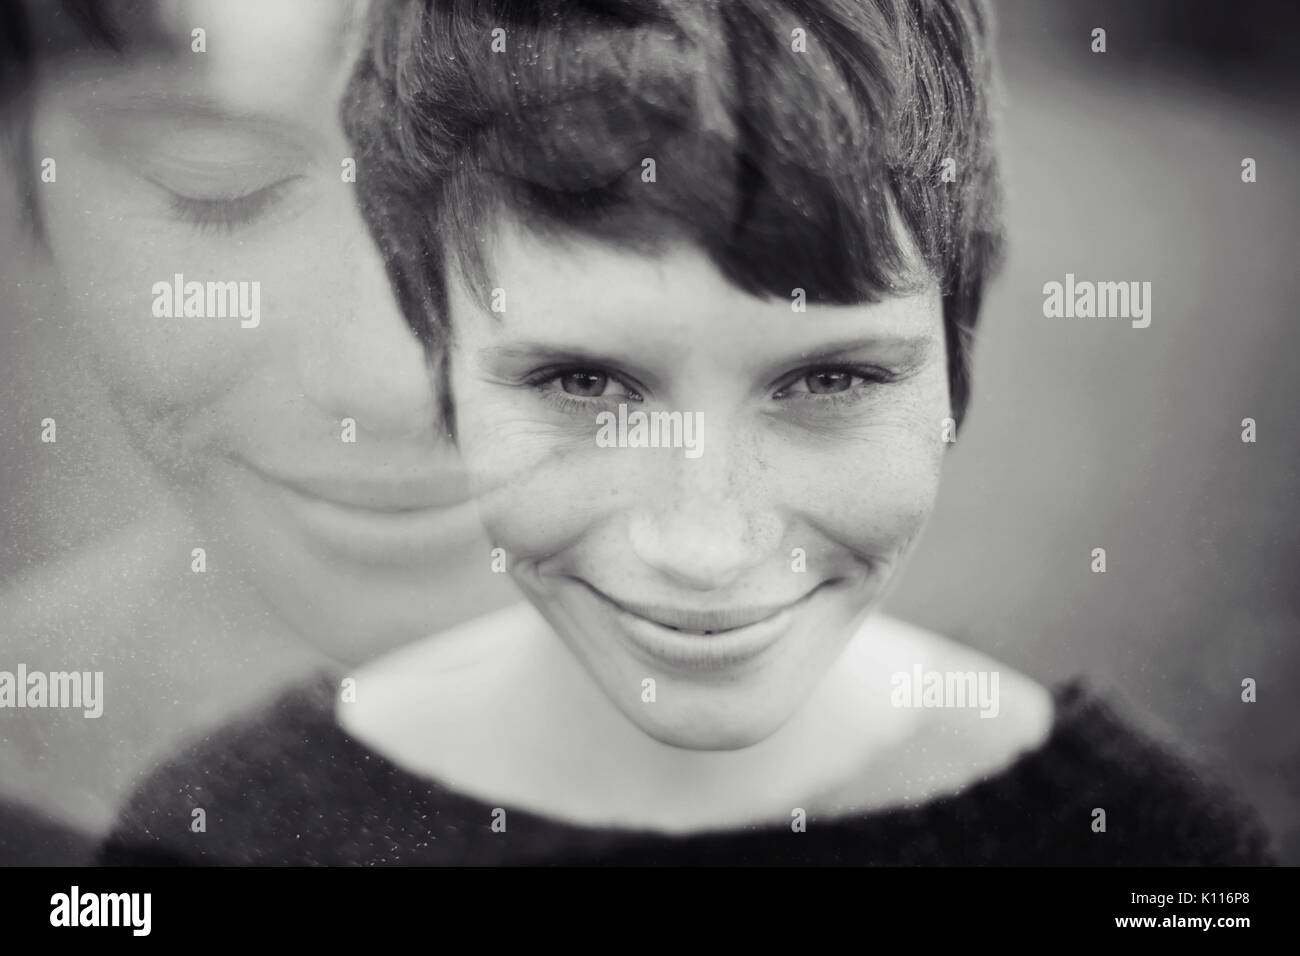 Duplicate portrait of a girl - Stock Image